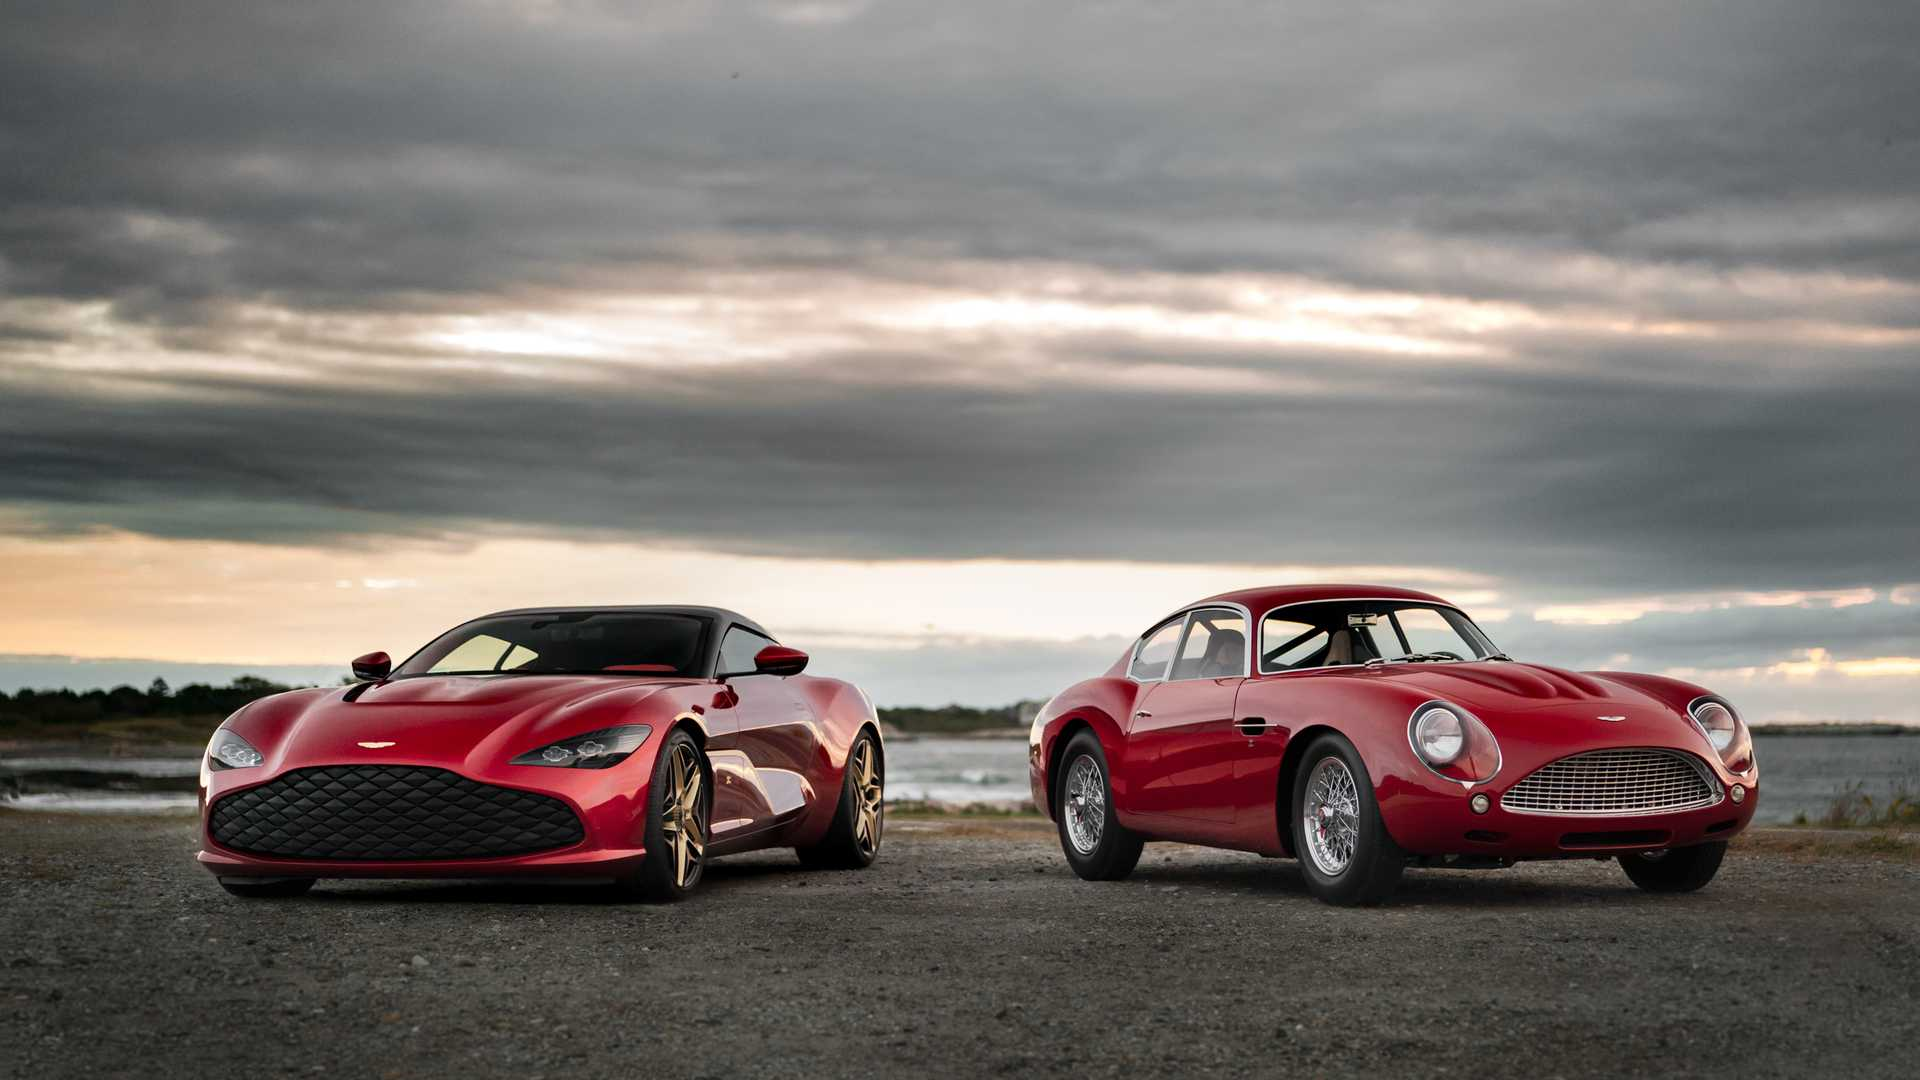 aston-martin-dbs-gt-zagato-and-db4-gt-zagato-continuation